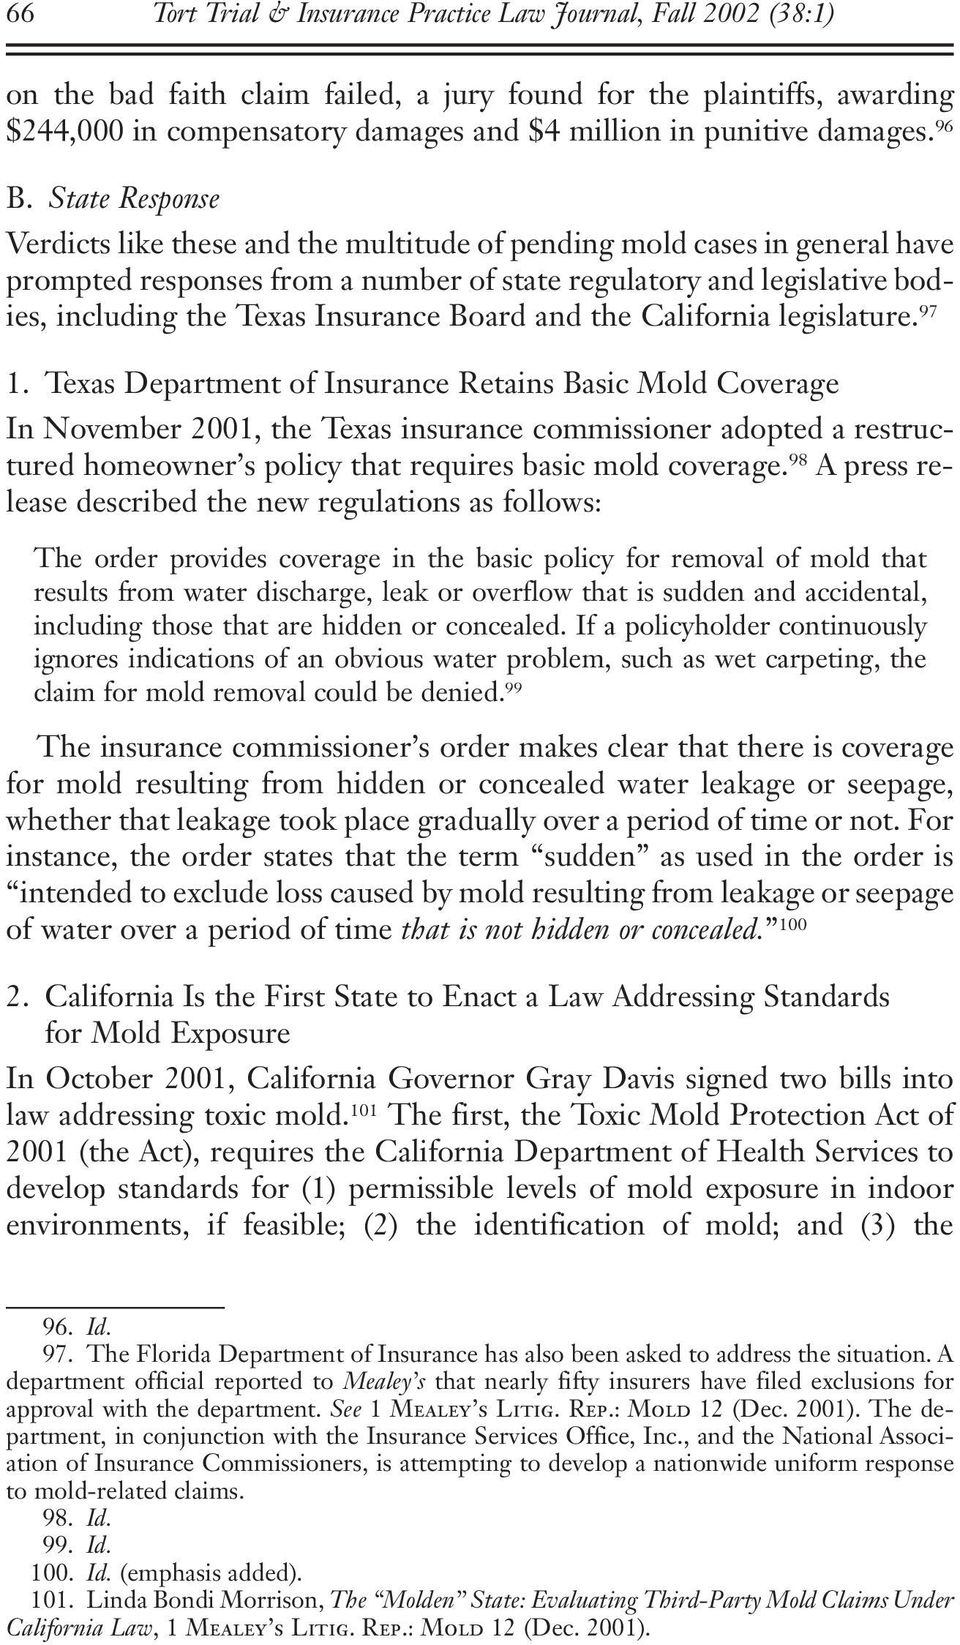 State Response Verdicts like these and the multitude of pending mold cases in general have prompted responses from a number of state regulatory and legislative bodies, including the Texas Insurance